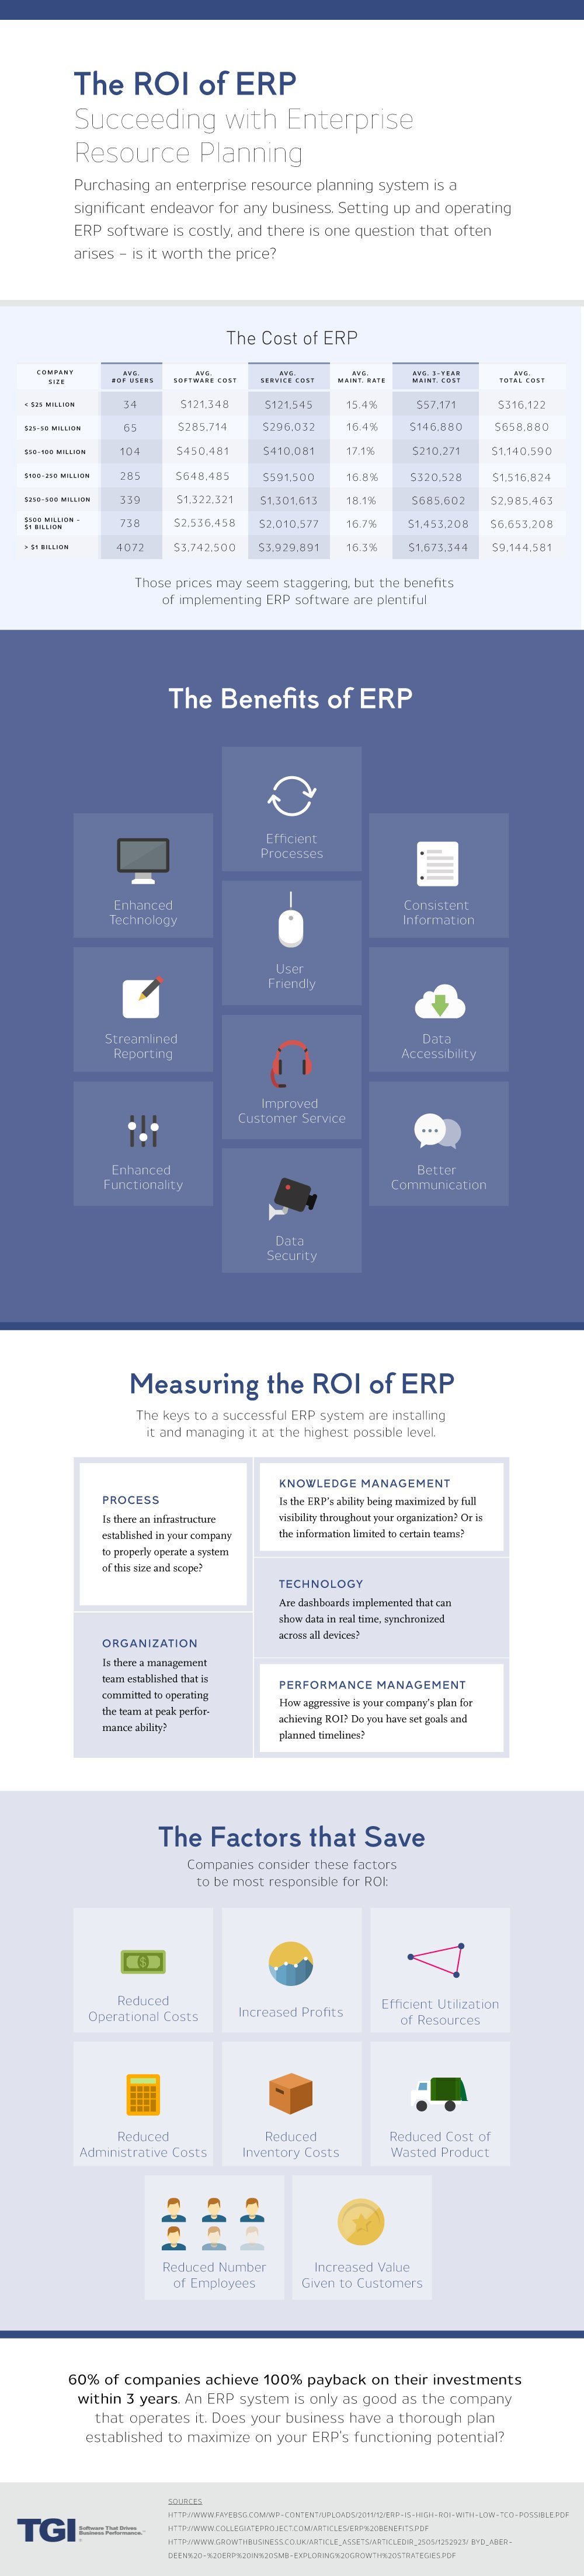 The ROI of ERP